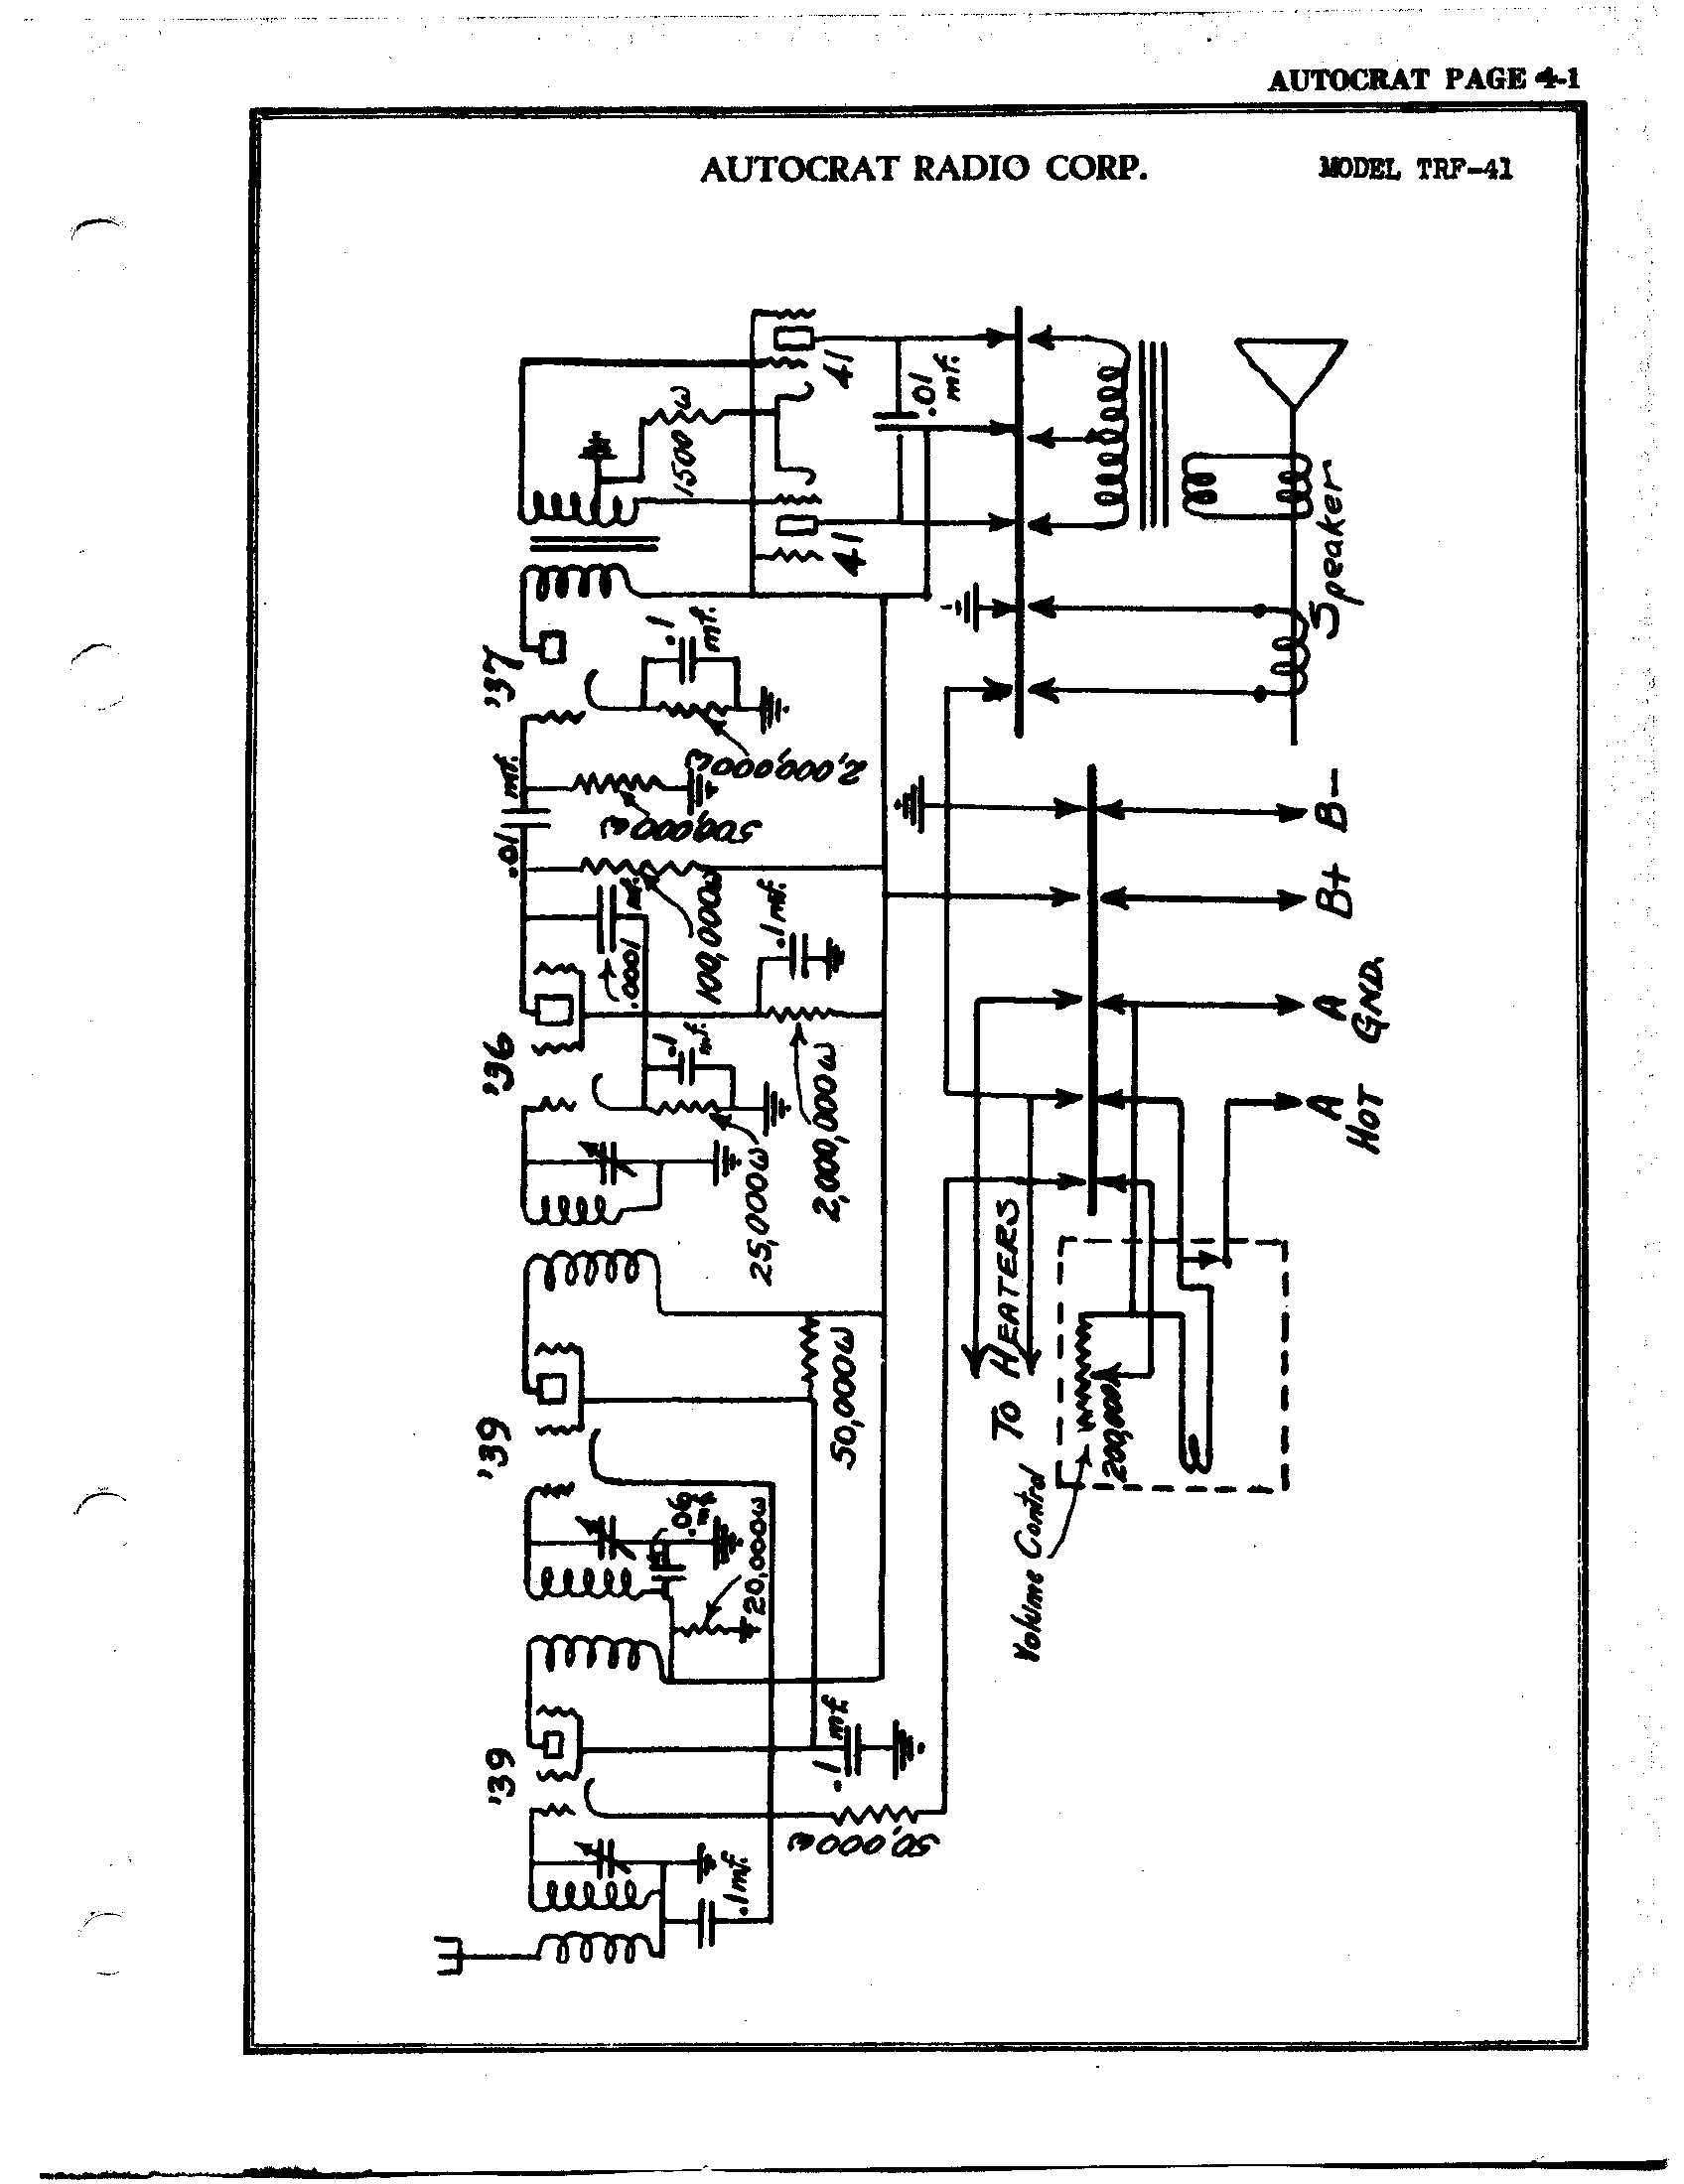 Autocrat Radio Corp. TRF-41 | Antique Electronic Supply on crystal radio schematic, transistor radio schematic, am radio circuit schematic,